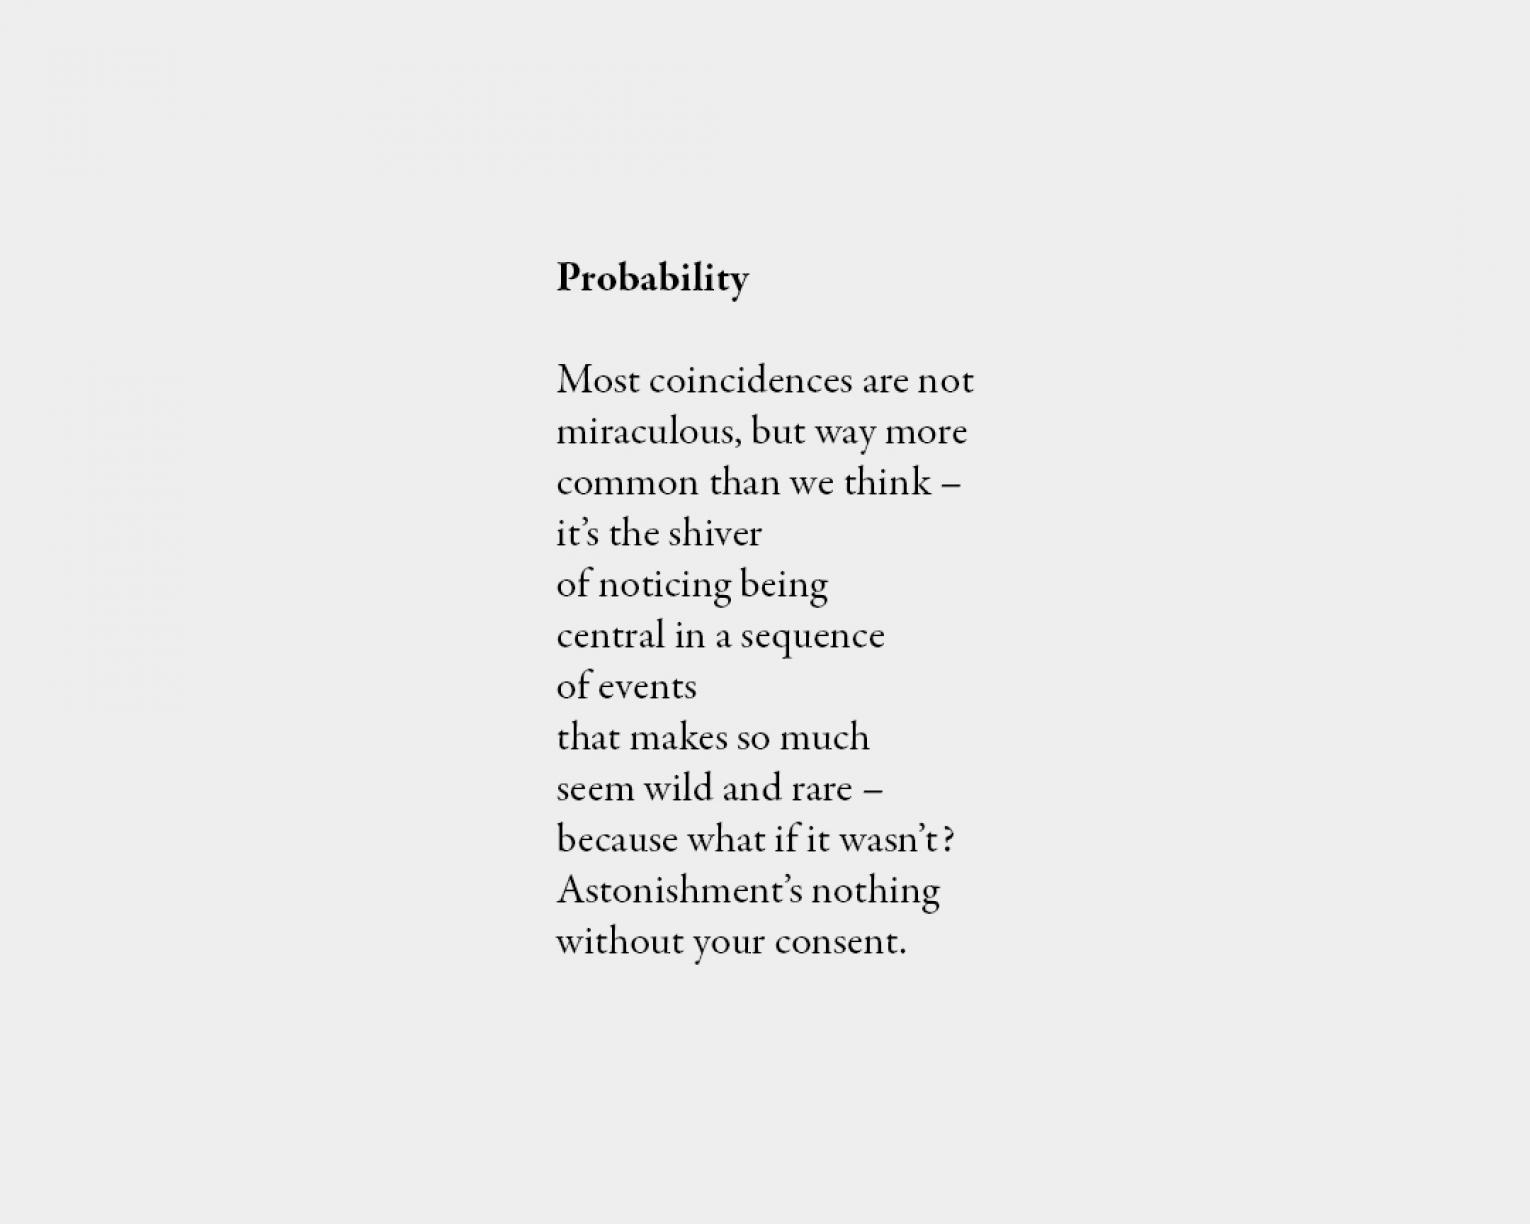 Poem: Probability Most coincidences are not miraculous, but way more common than we think – it's the shiver of noticing being central in a sequence of events that makes so much seem wild and rare – because what if it wasn't? Astonishment's nothing without your consent.